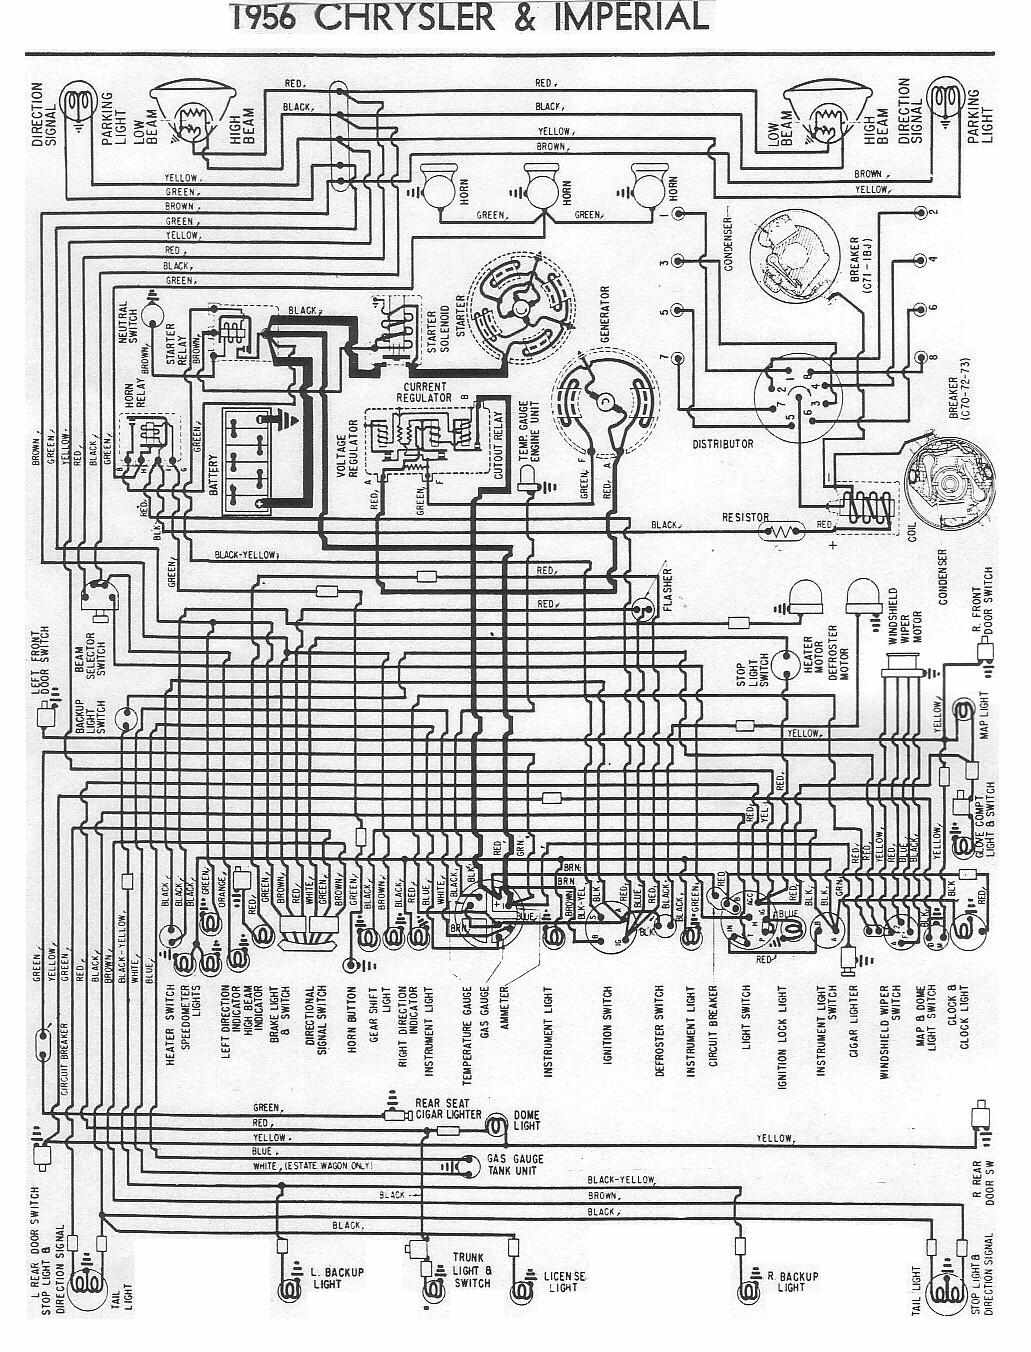 1955 Chrysler Imperial Wiring Diagram Trusted Crossfire Harness Library Of 1954 Mopar Diagrams Rh Svpack Co 1953